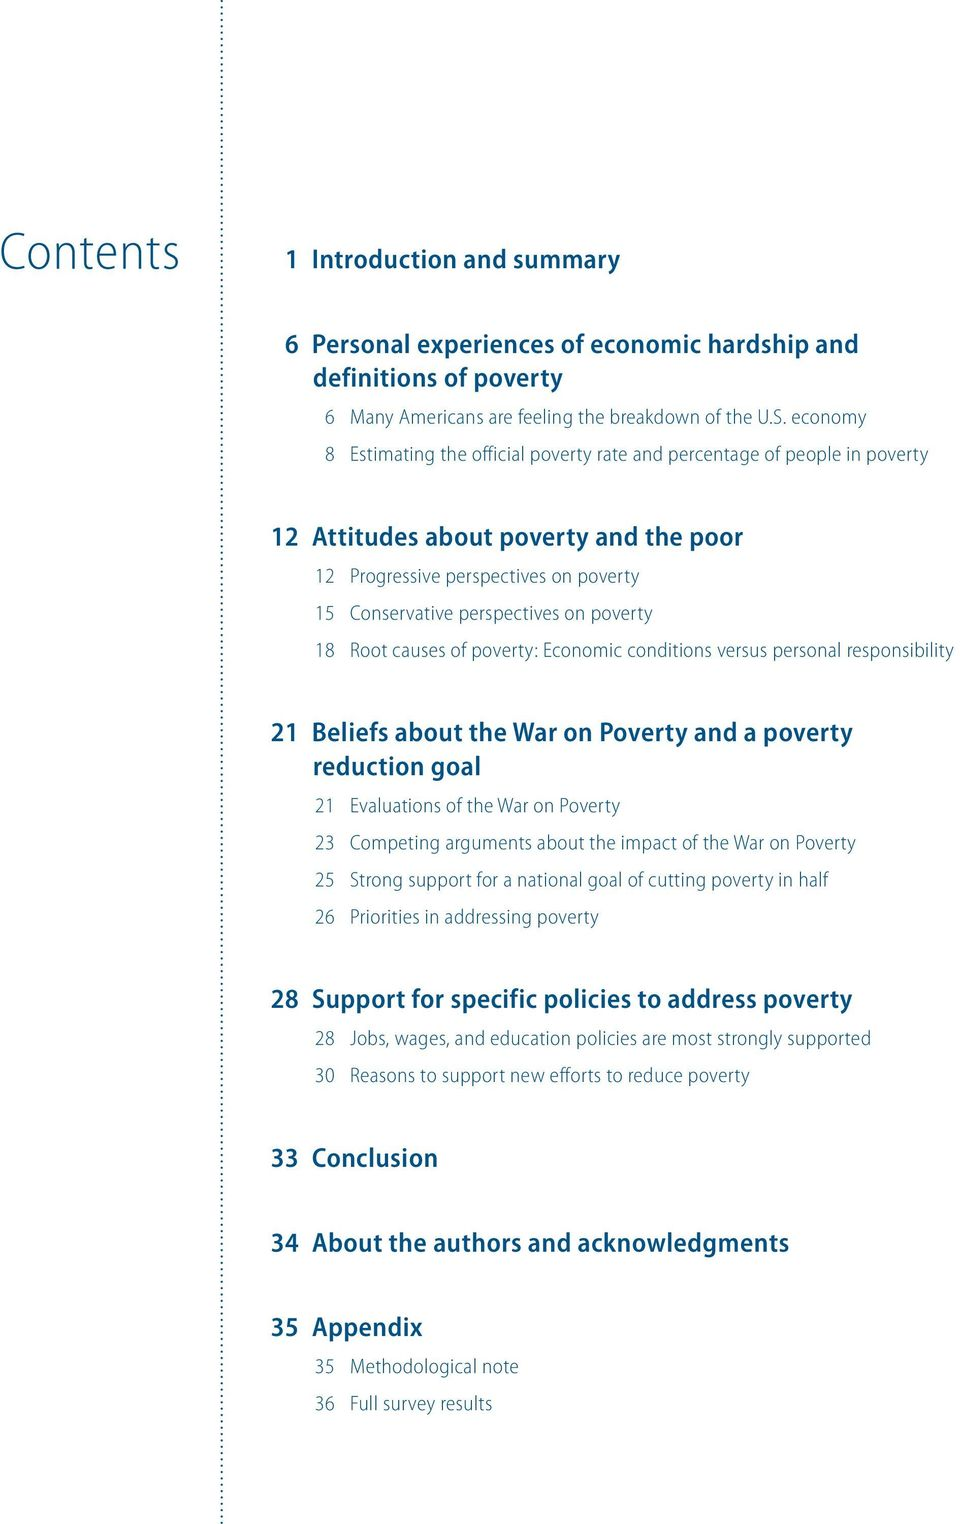 poverty 18 Root causes of poverty: Economic conditions versus personal responsibility 21 Beliefs about the War on Poverty and a poverty reduction goal 21 Evaluations of the War on Poverty 23